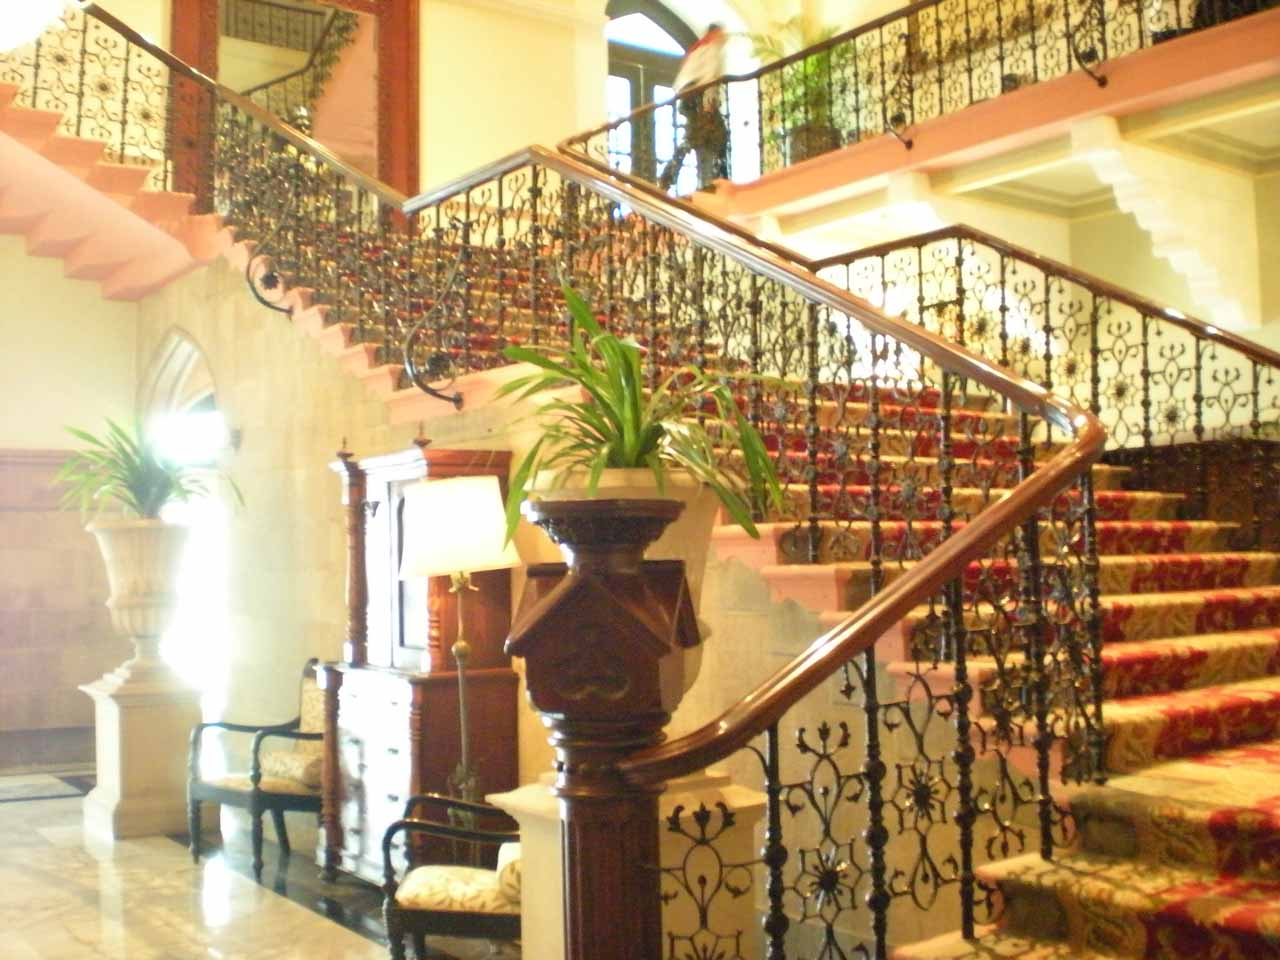 Inside the Taj Mahal Hotel